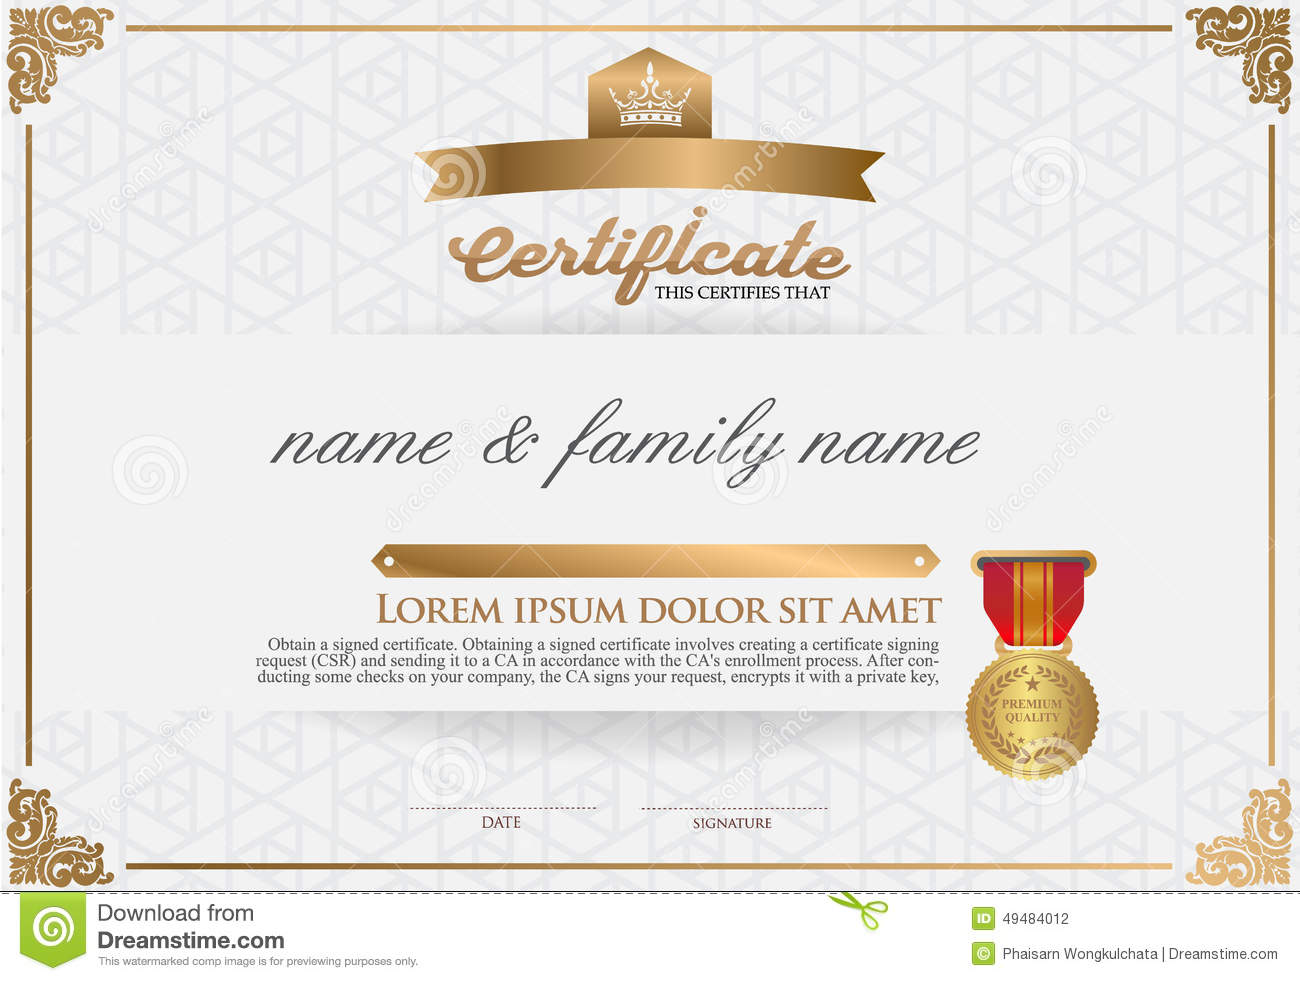 Bee certificate template fotos35 share certificate template best chef certificate template gallery certificate design and yelopaper Images